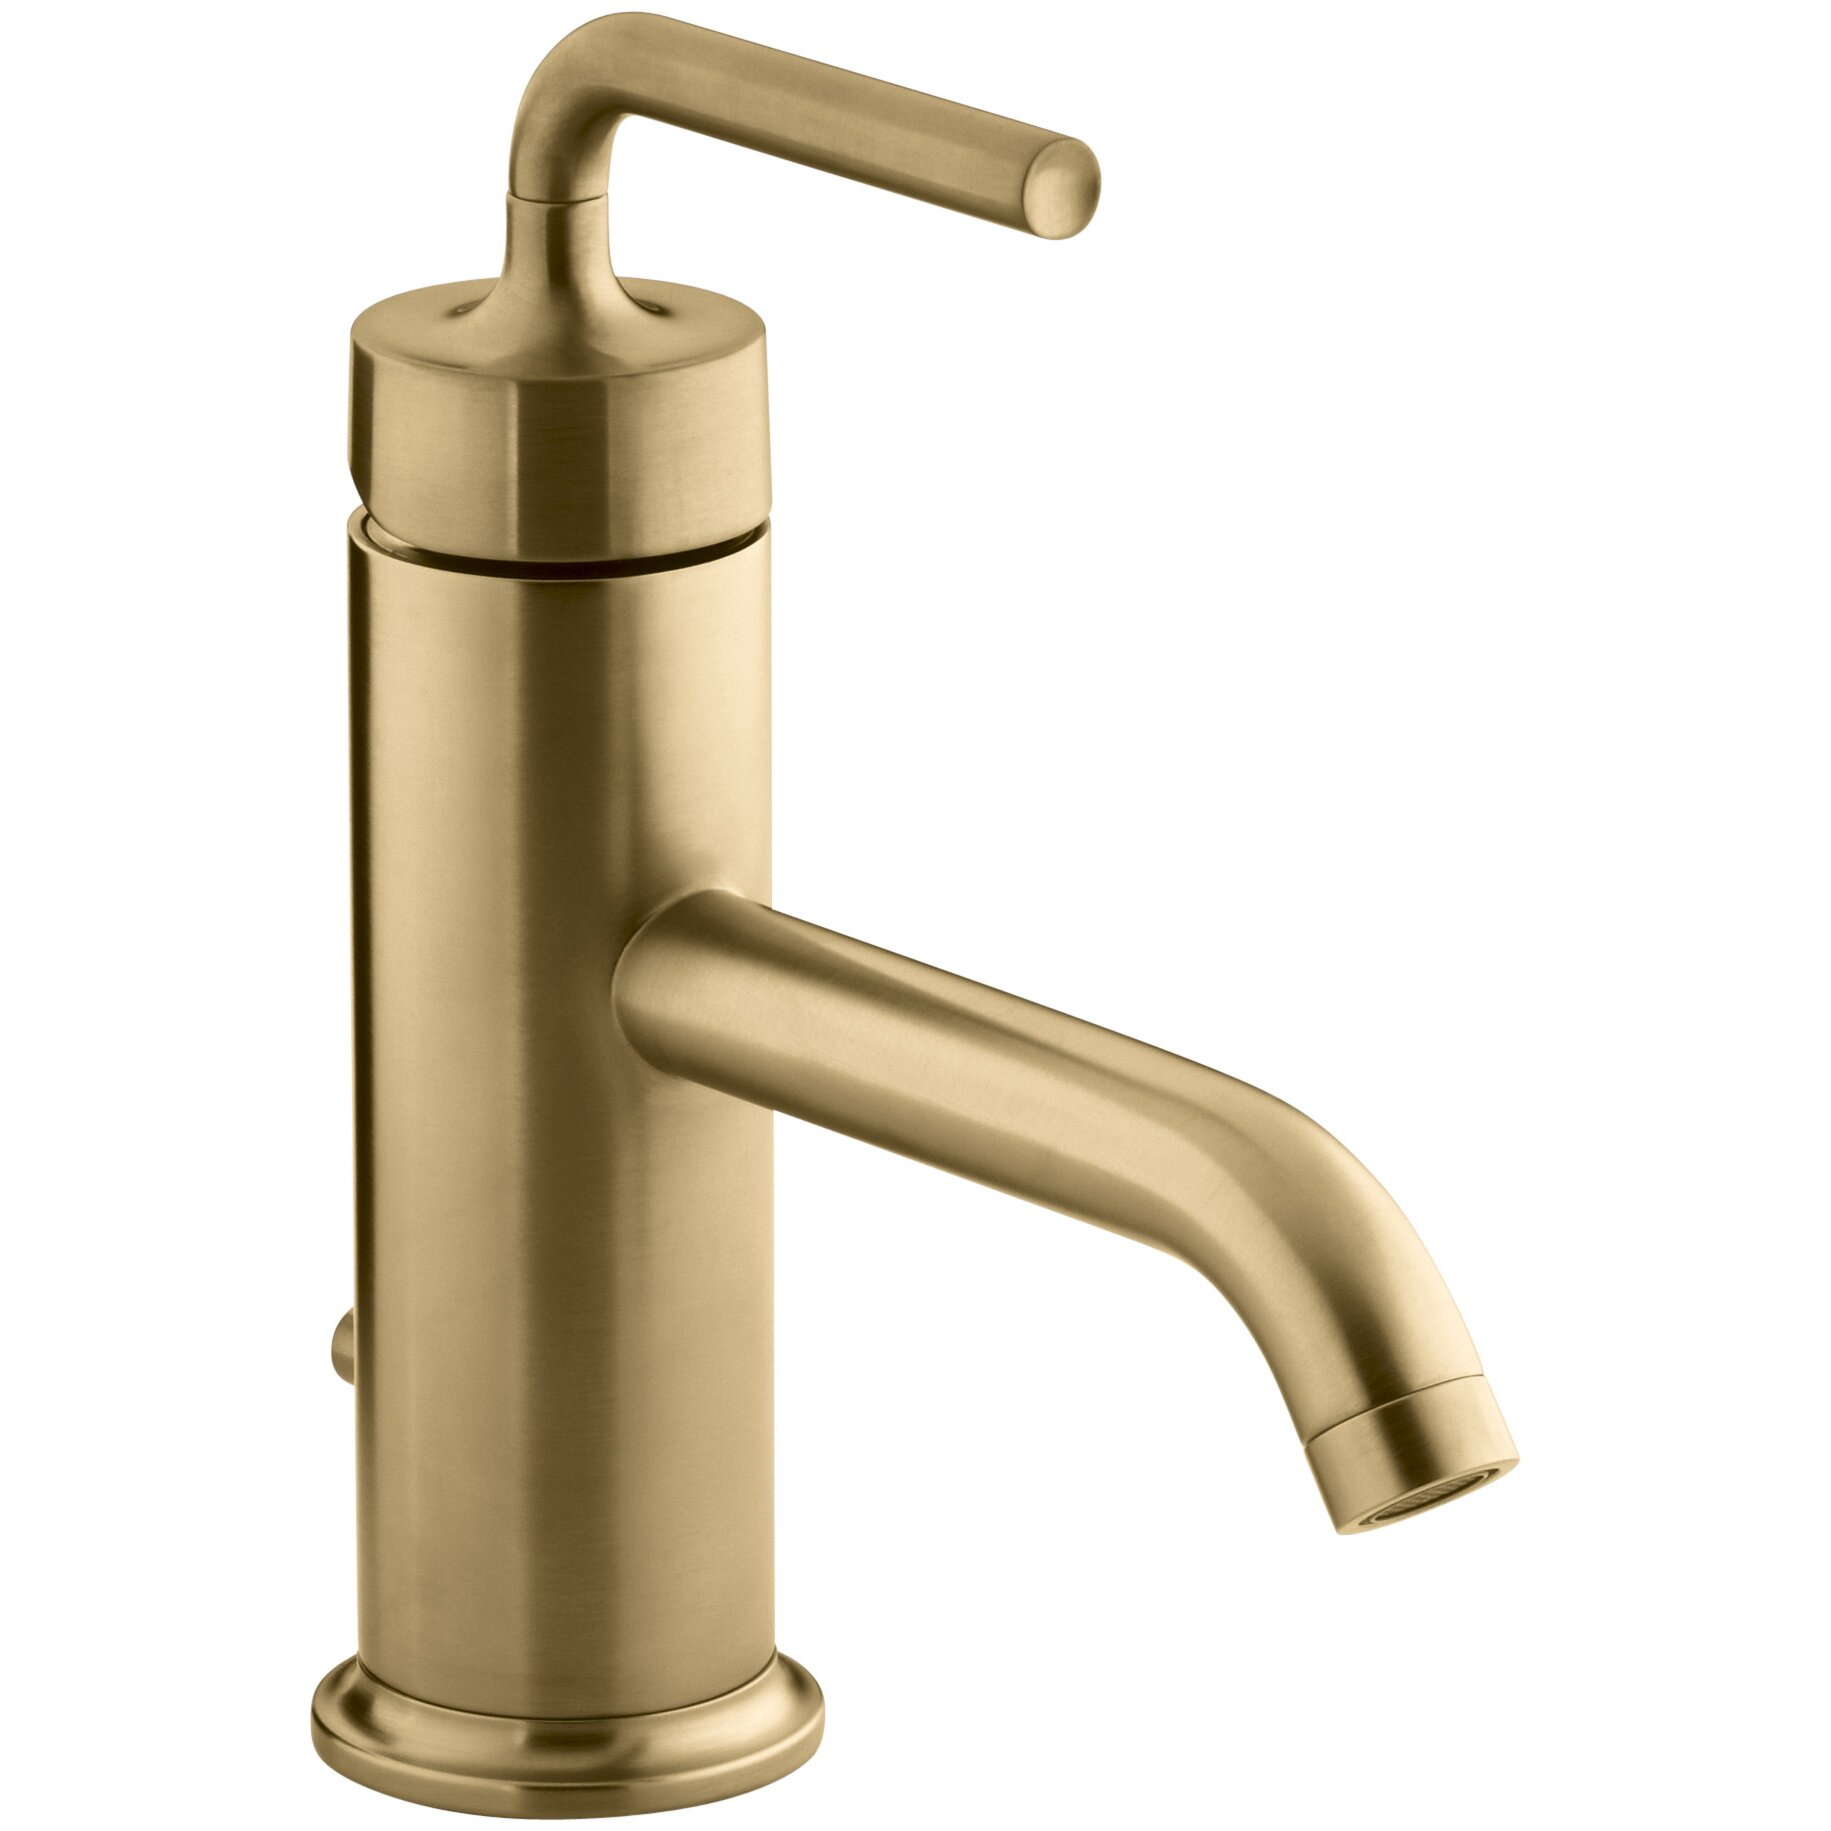 single hole bathroom sink faucet with straight lever handle by kohler